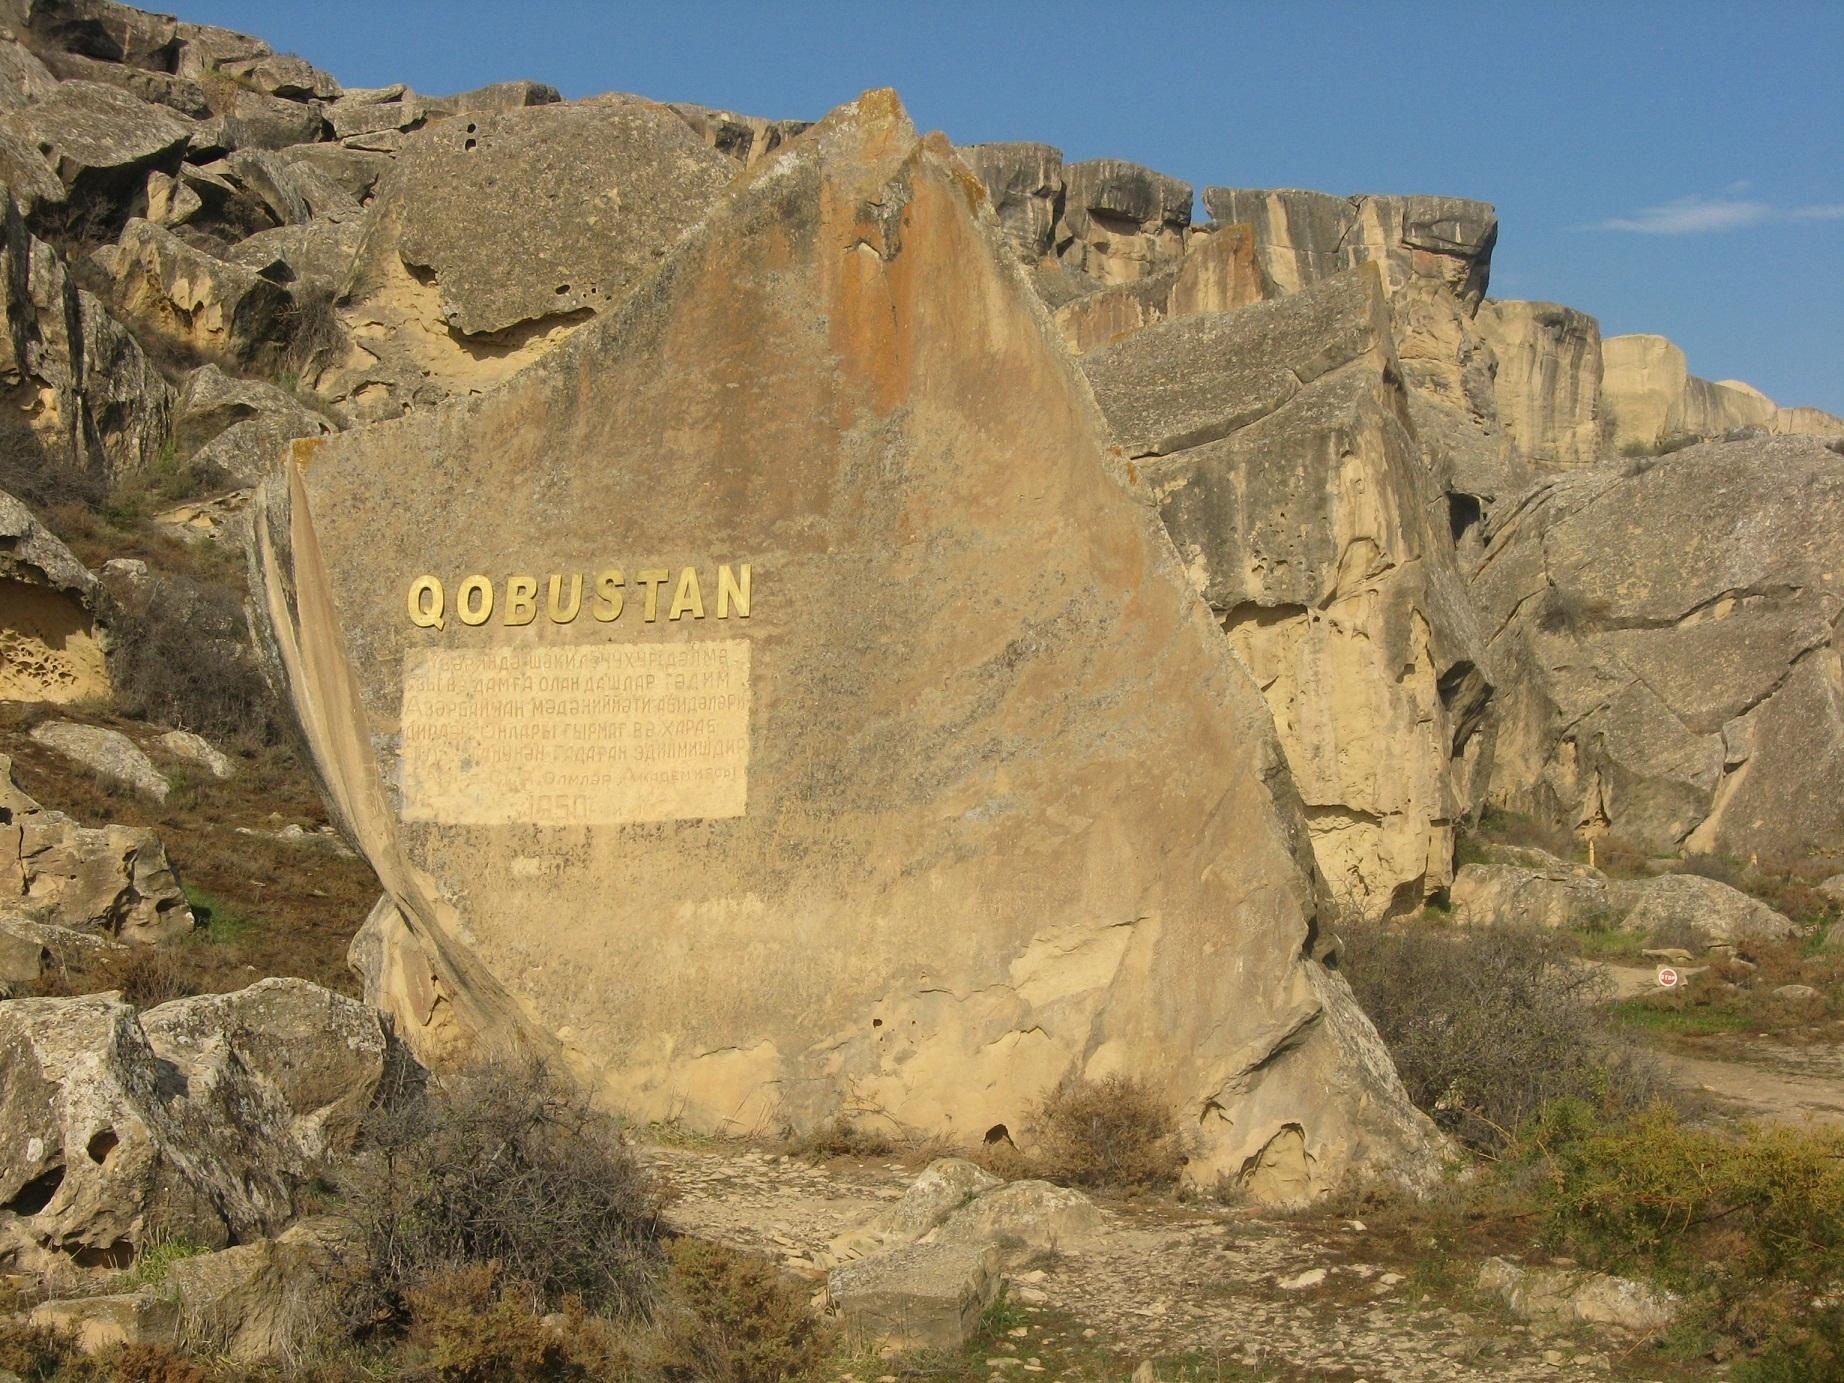 Over 65 000 tourists visited Gobustan State Historical-Artistic Reserve last year